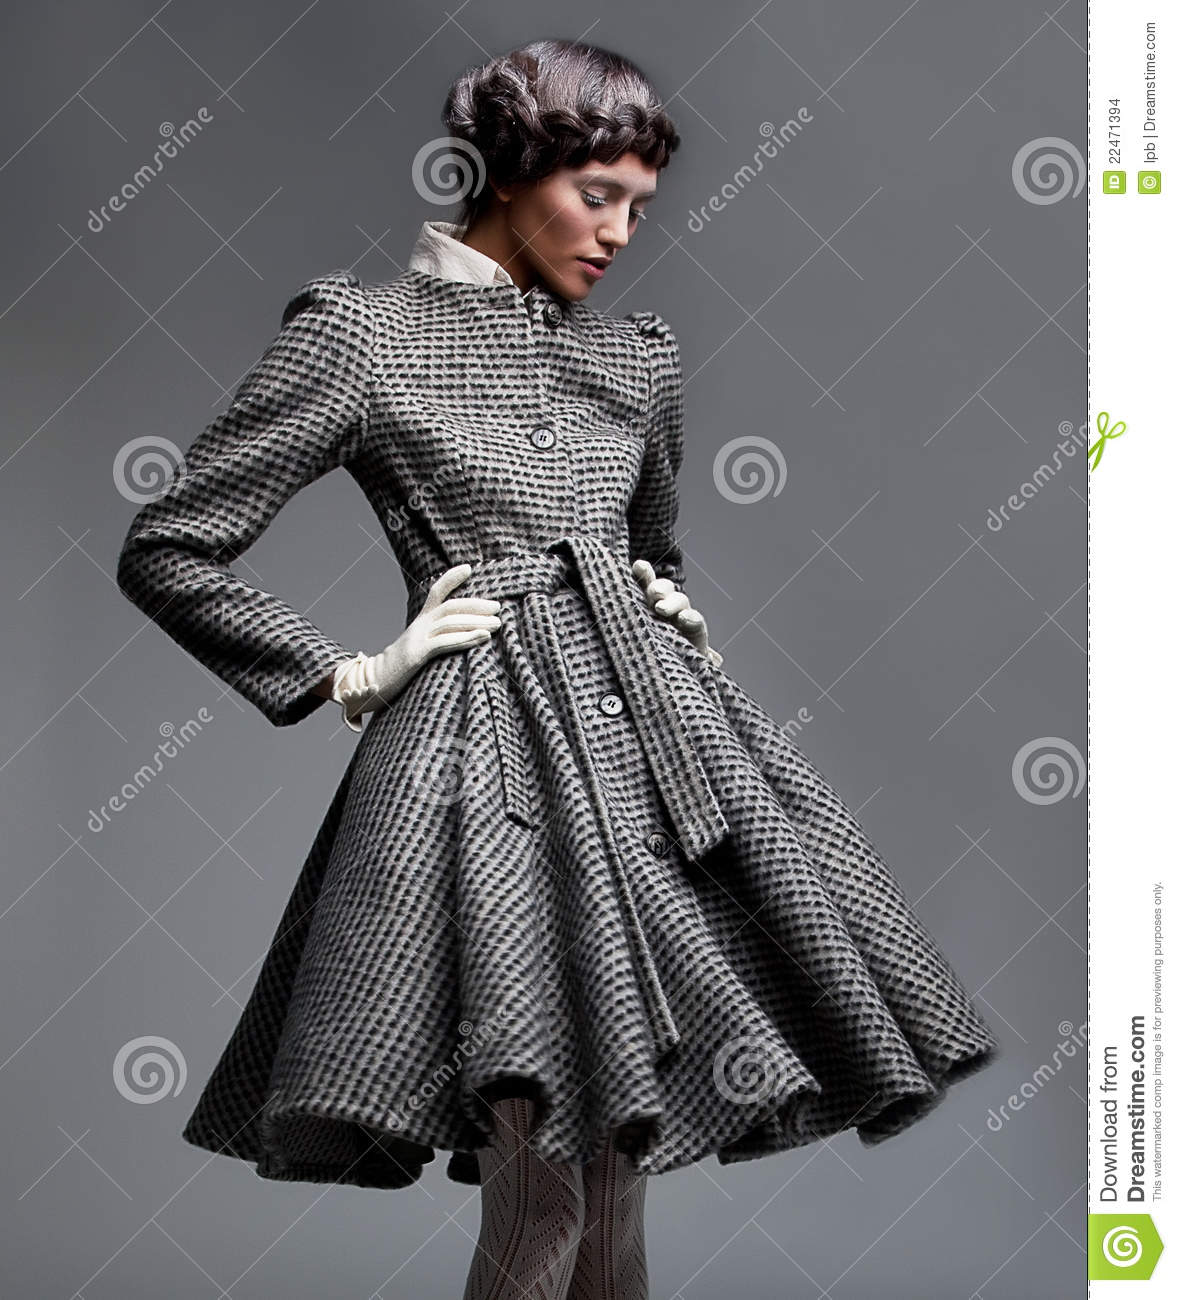 Retro style fashion model in retro apparel stock images image 22471394 - Retro stuhle gunstig ...